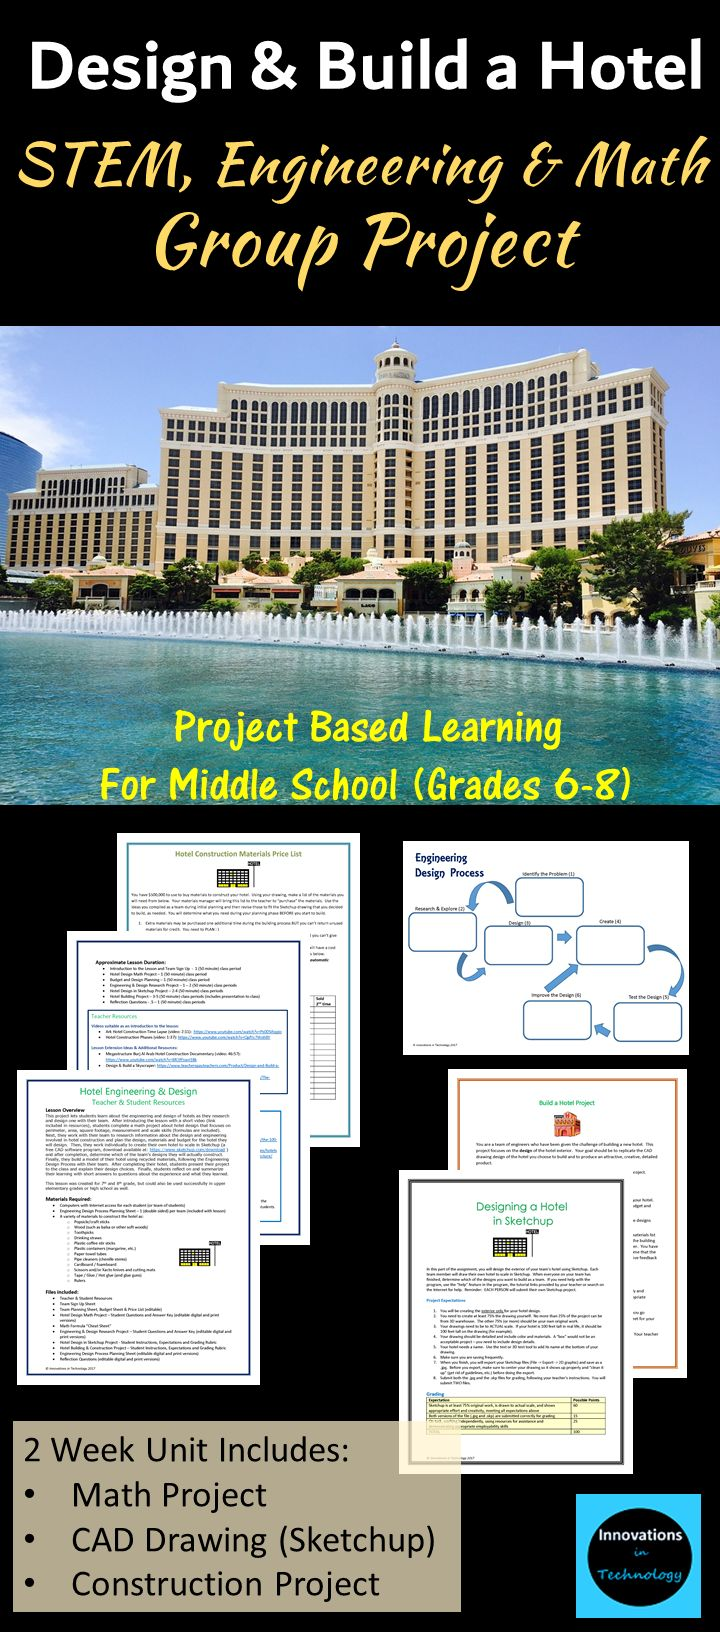 This project lets students learn about the engineering and design of hotels as they research and design one with their team.  Math, CAD design (Sketchup) and hands-on building project, resources, student planning guides, answer keys and reflection questions included.